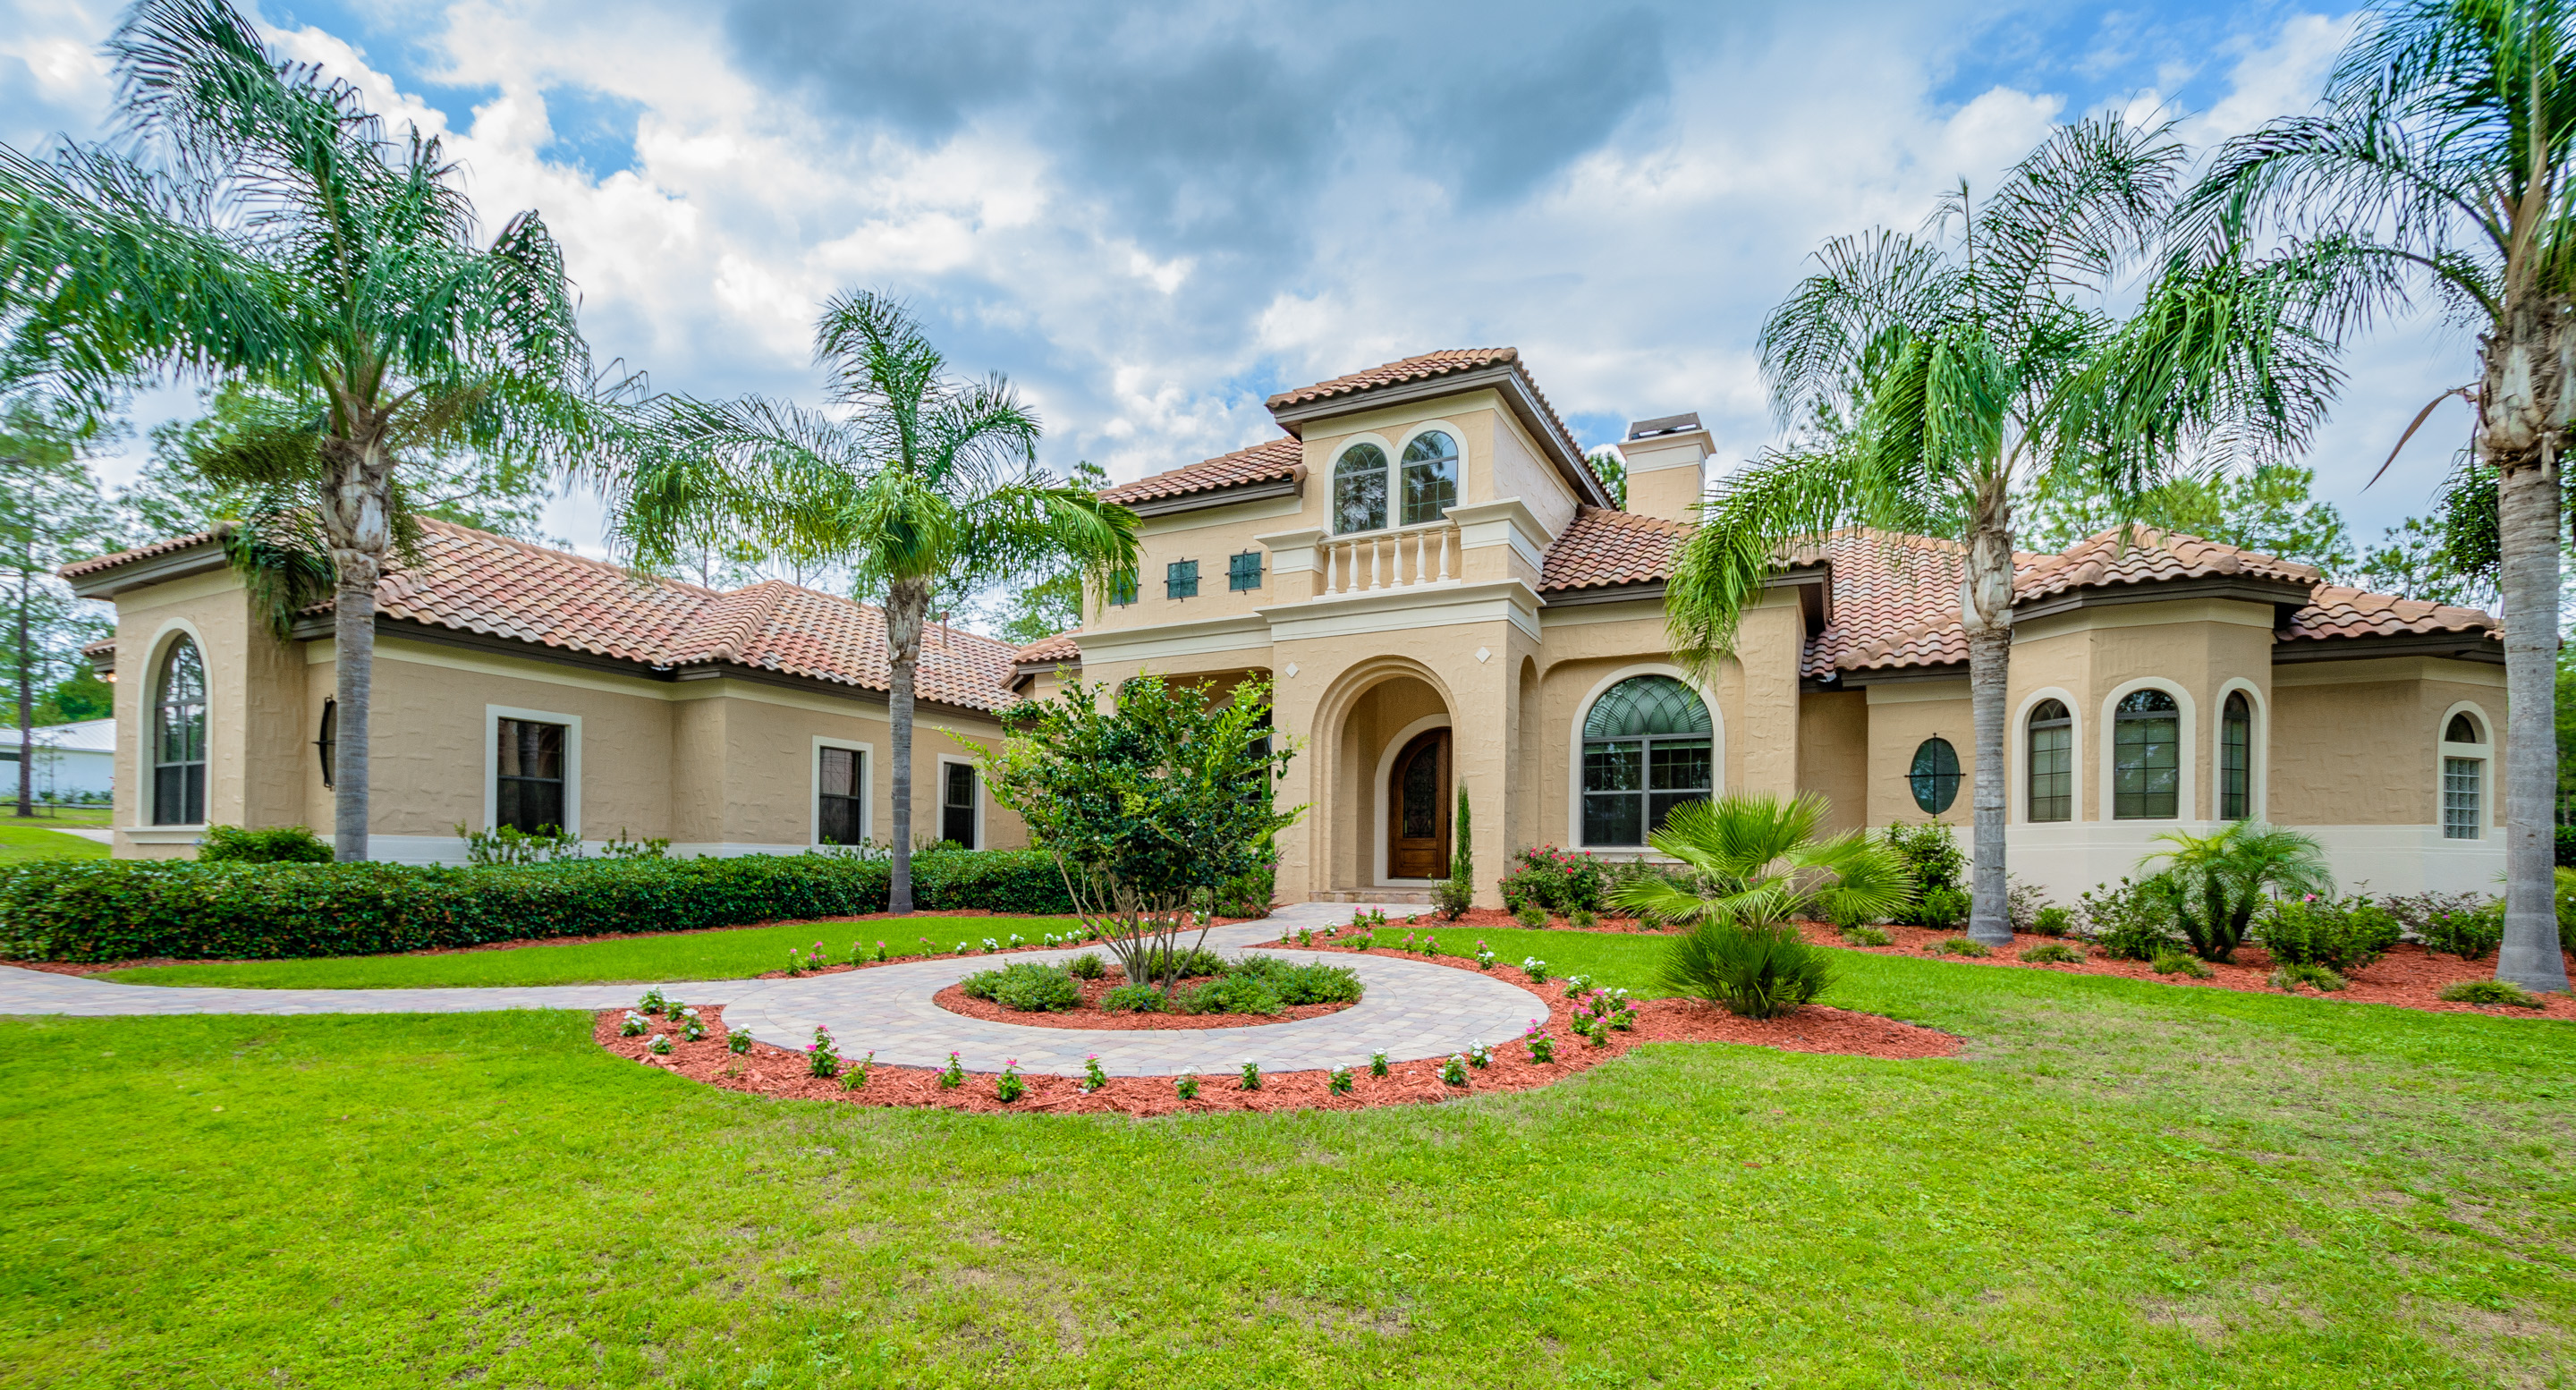 Luxury Real Estate Eustis, FL